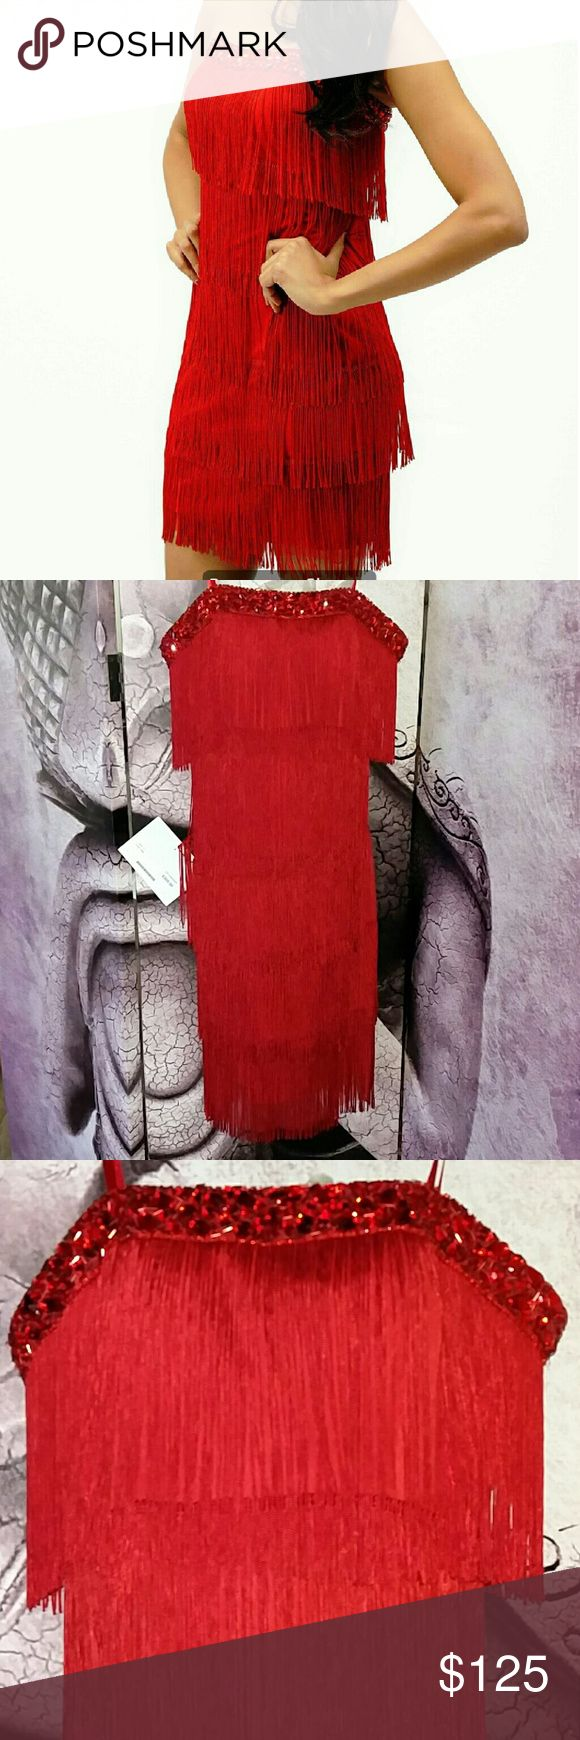 NWT Mori Lee Gardener Fringe Dress. Sz 2. Brand new with tags! Never worn or tried on. MORI LEE fun and flirty fringe mini. Red. Strapless with built-in lightly padded bust. Intricate beading on the neckline. Zipper back. The layers of fringe on this Mori Lee dress is amazing! Retails $360+ tax. This is a steal at this price - don't miss it. Mori Lee Dresses Mini